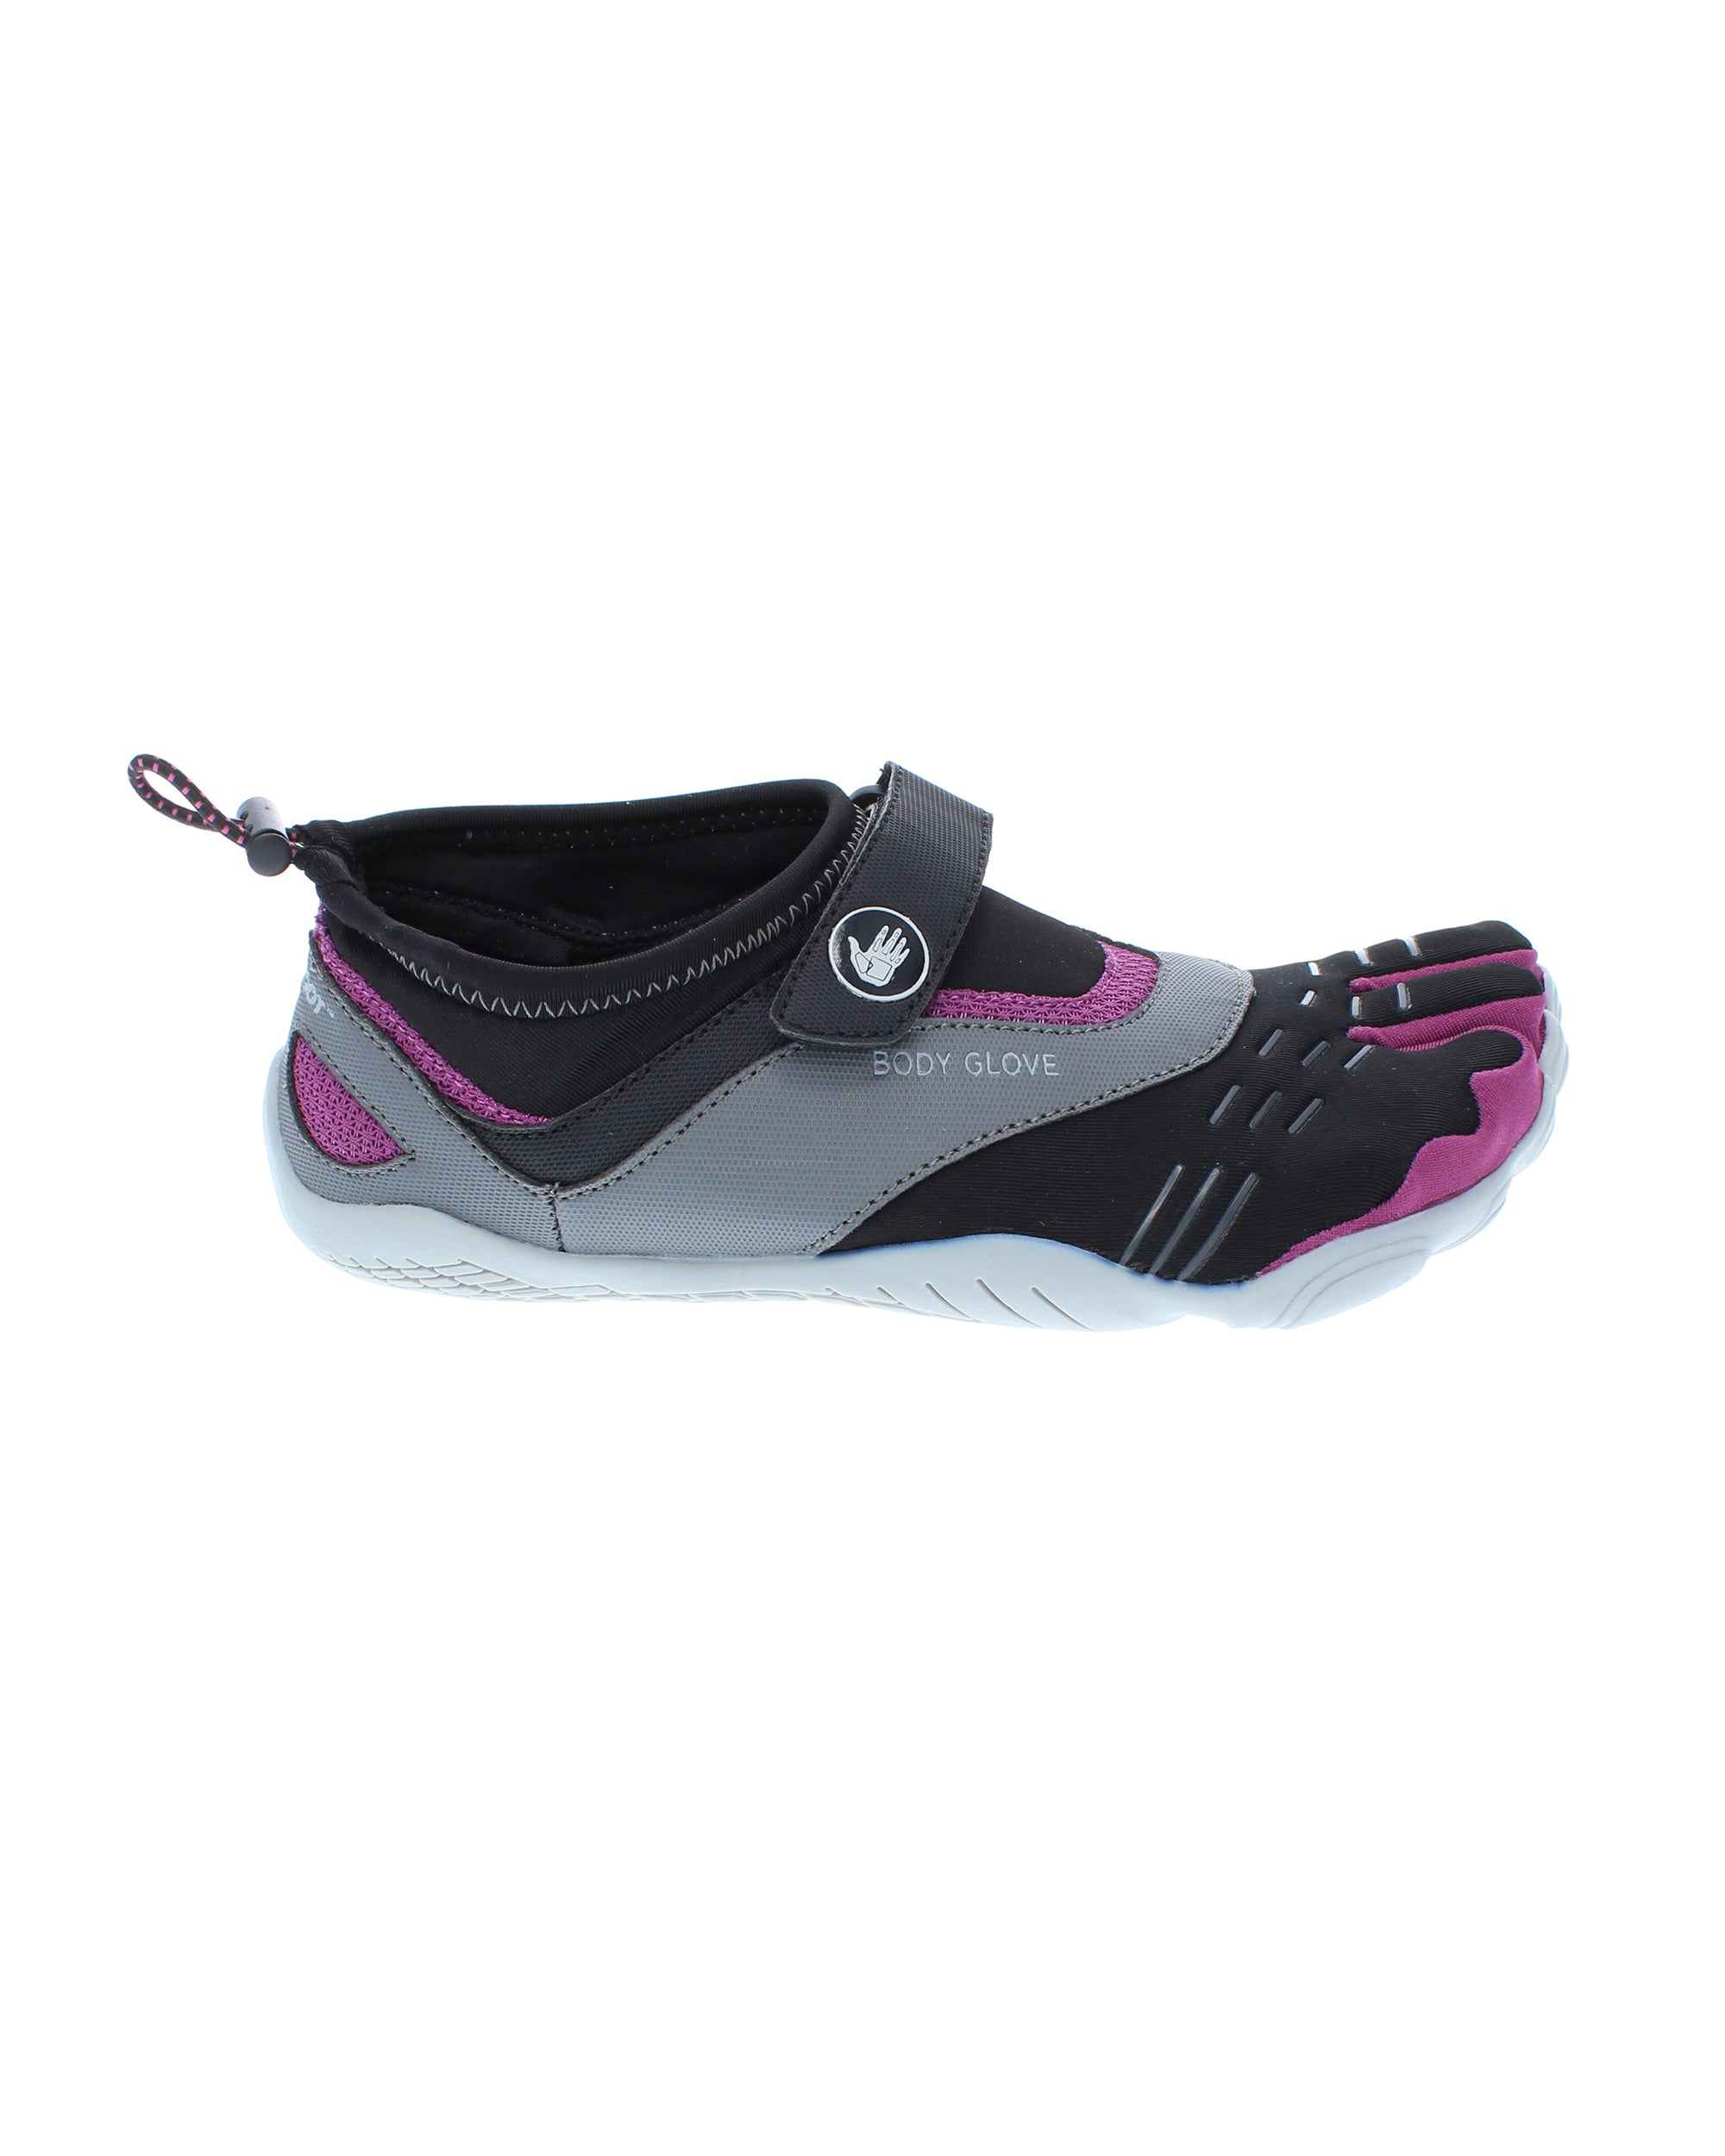 5b996901b26 Women's 3T Barefoot Max Water Shoes - Black/Magnolia. Tap to Expand. Hover  or Click to Enlarge